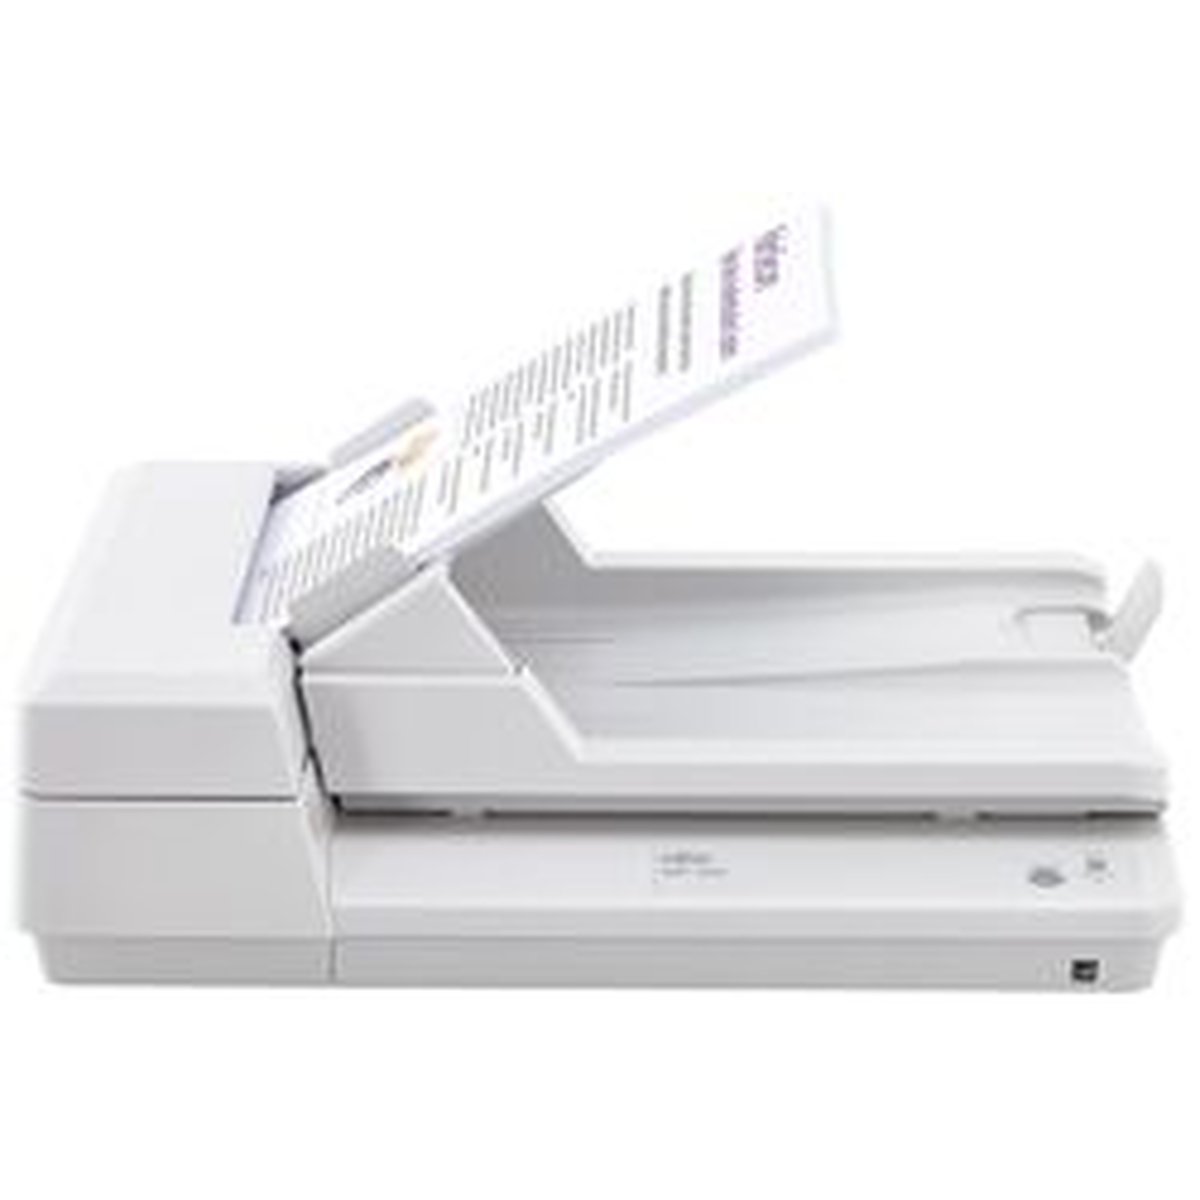 Fujitsu Scanner SP-1425 mit PaperStream Capture Lite